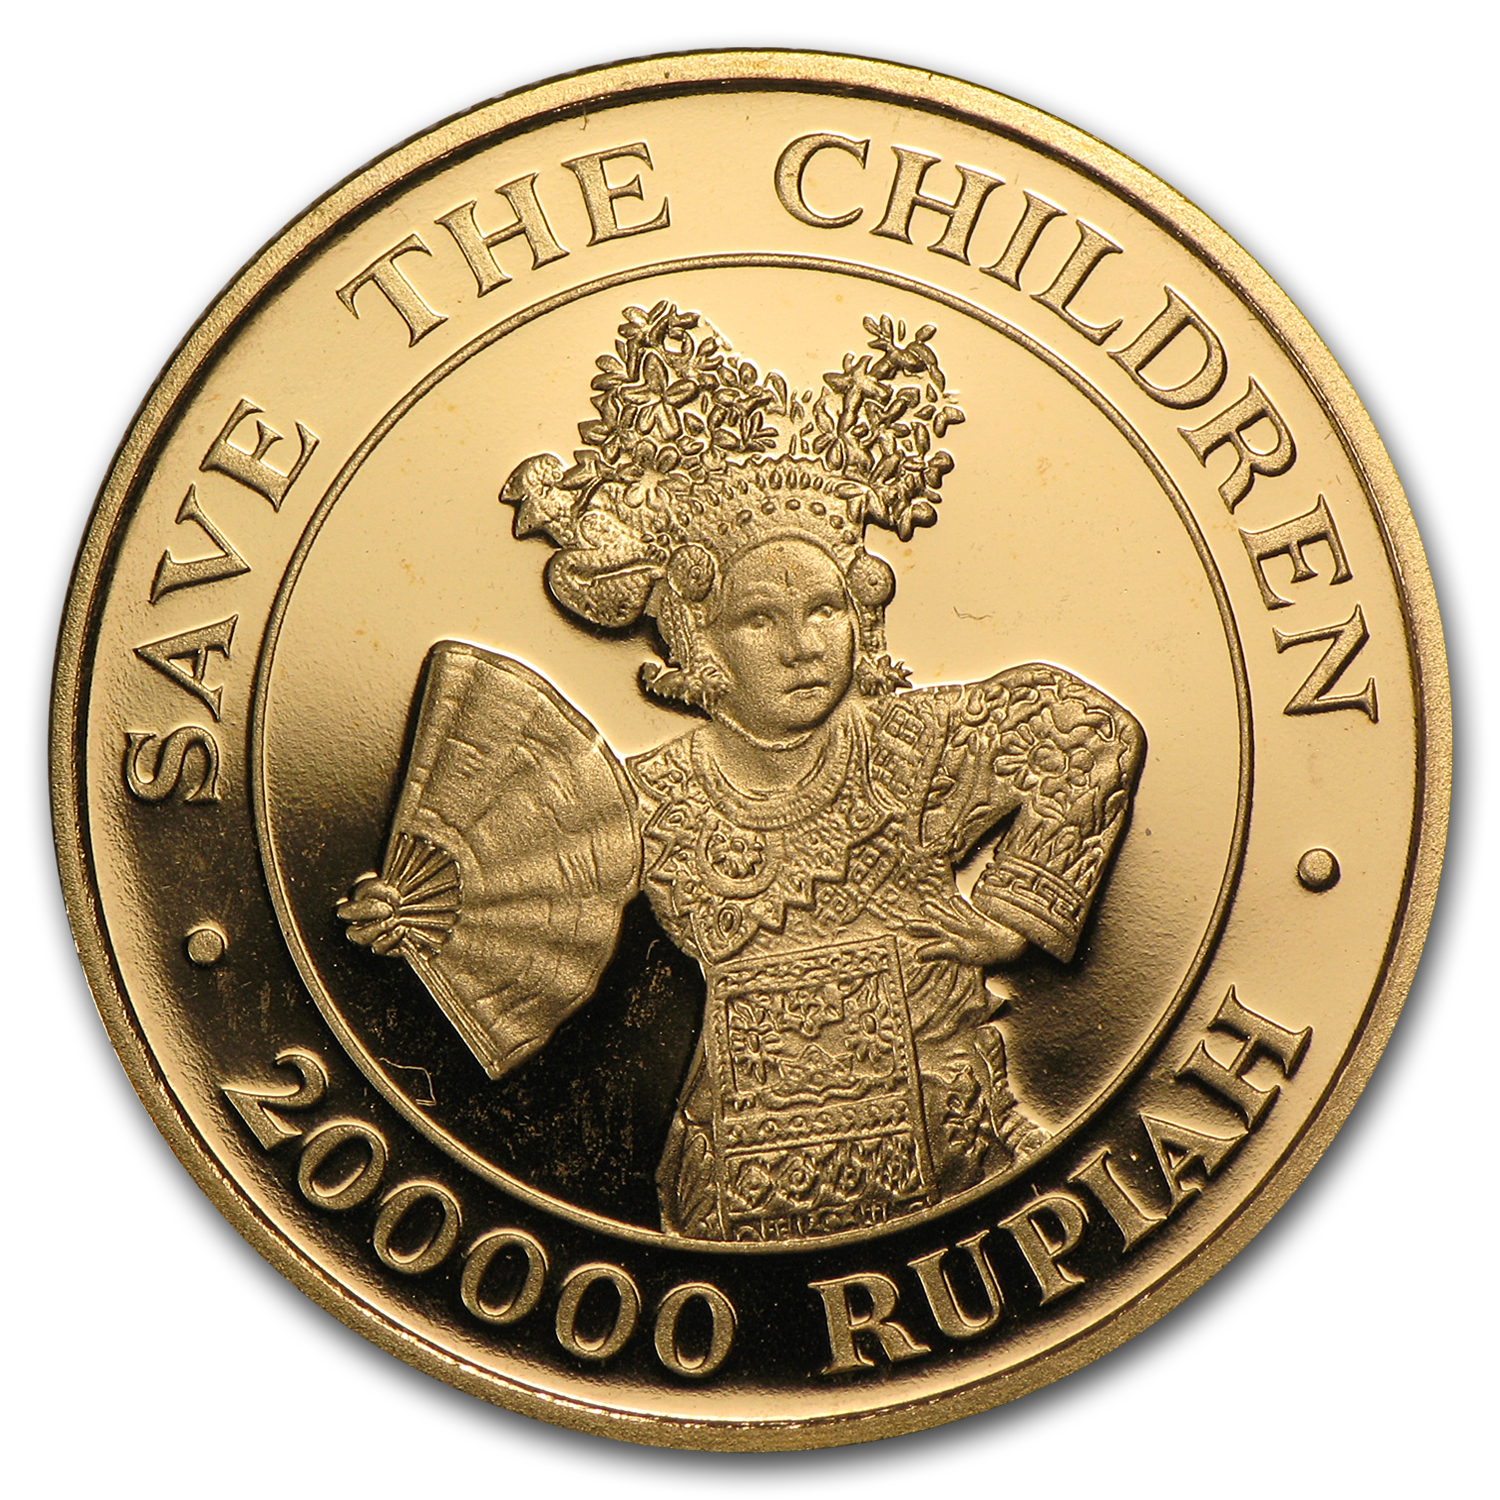 1990 Indonesia Gold 200000 Rupiah Save the Children Proof